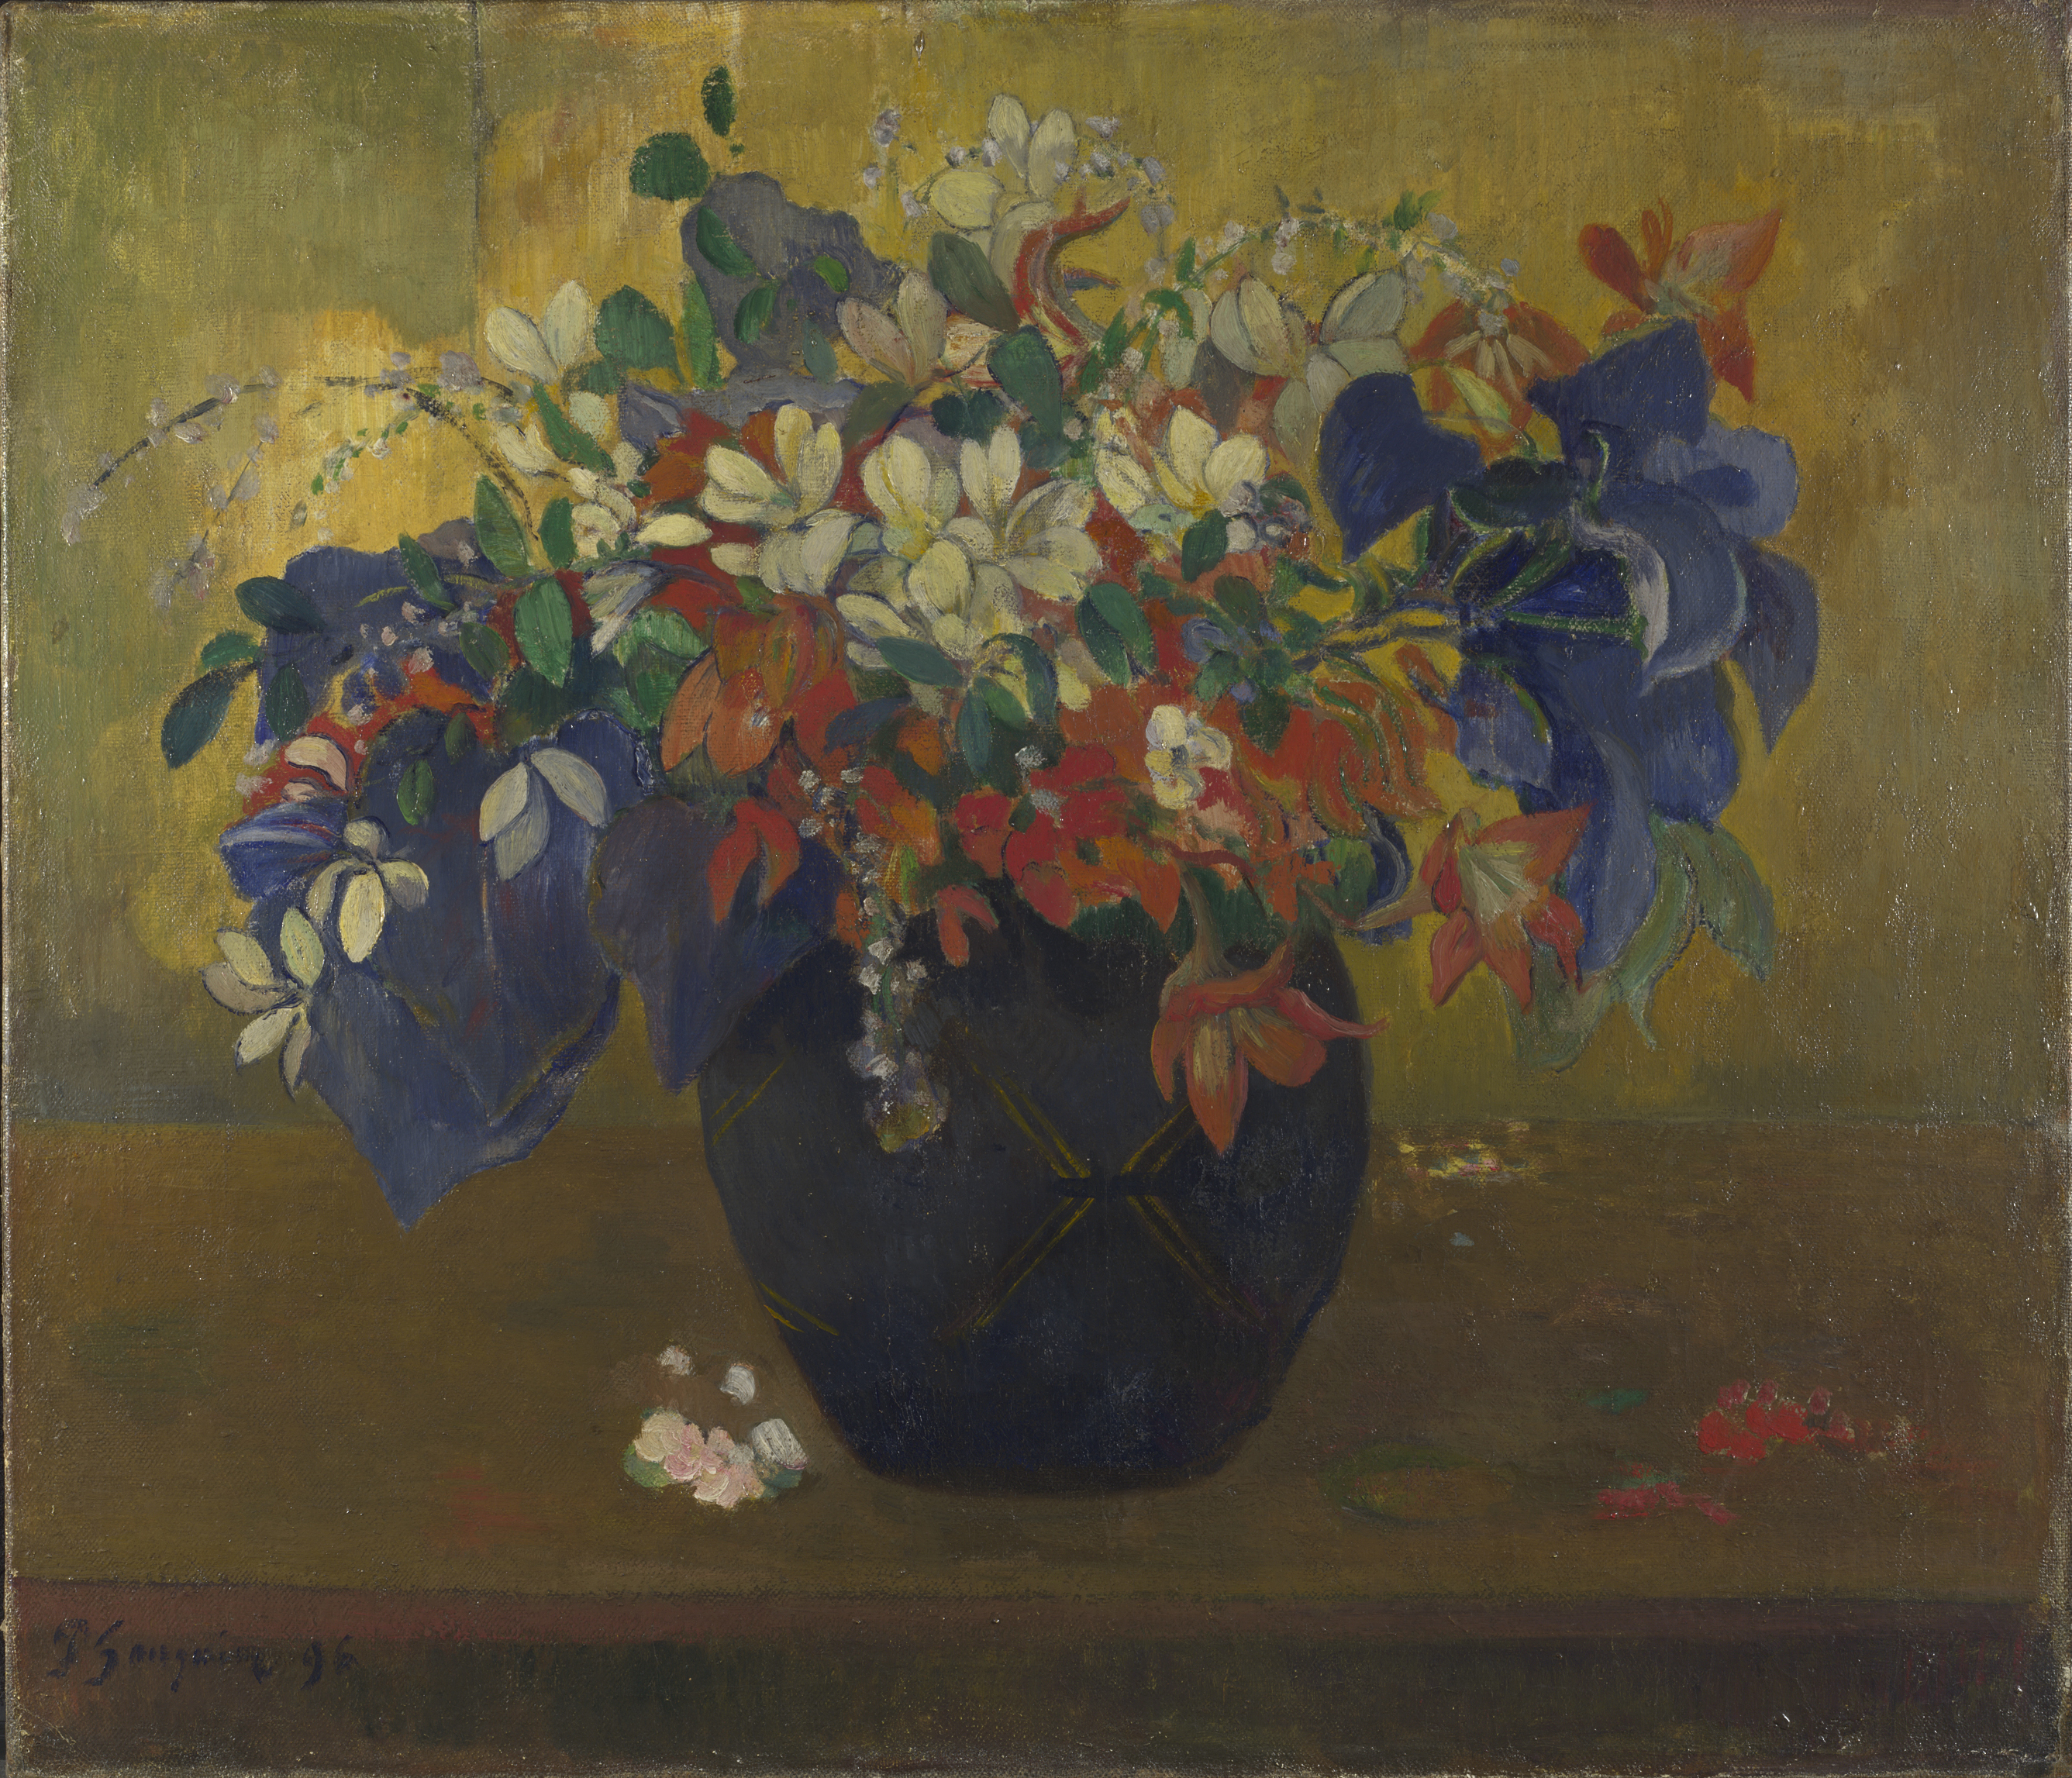 A Vase of Flowers by Paul Gauguin, 1896